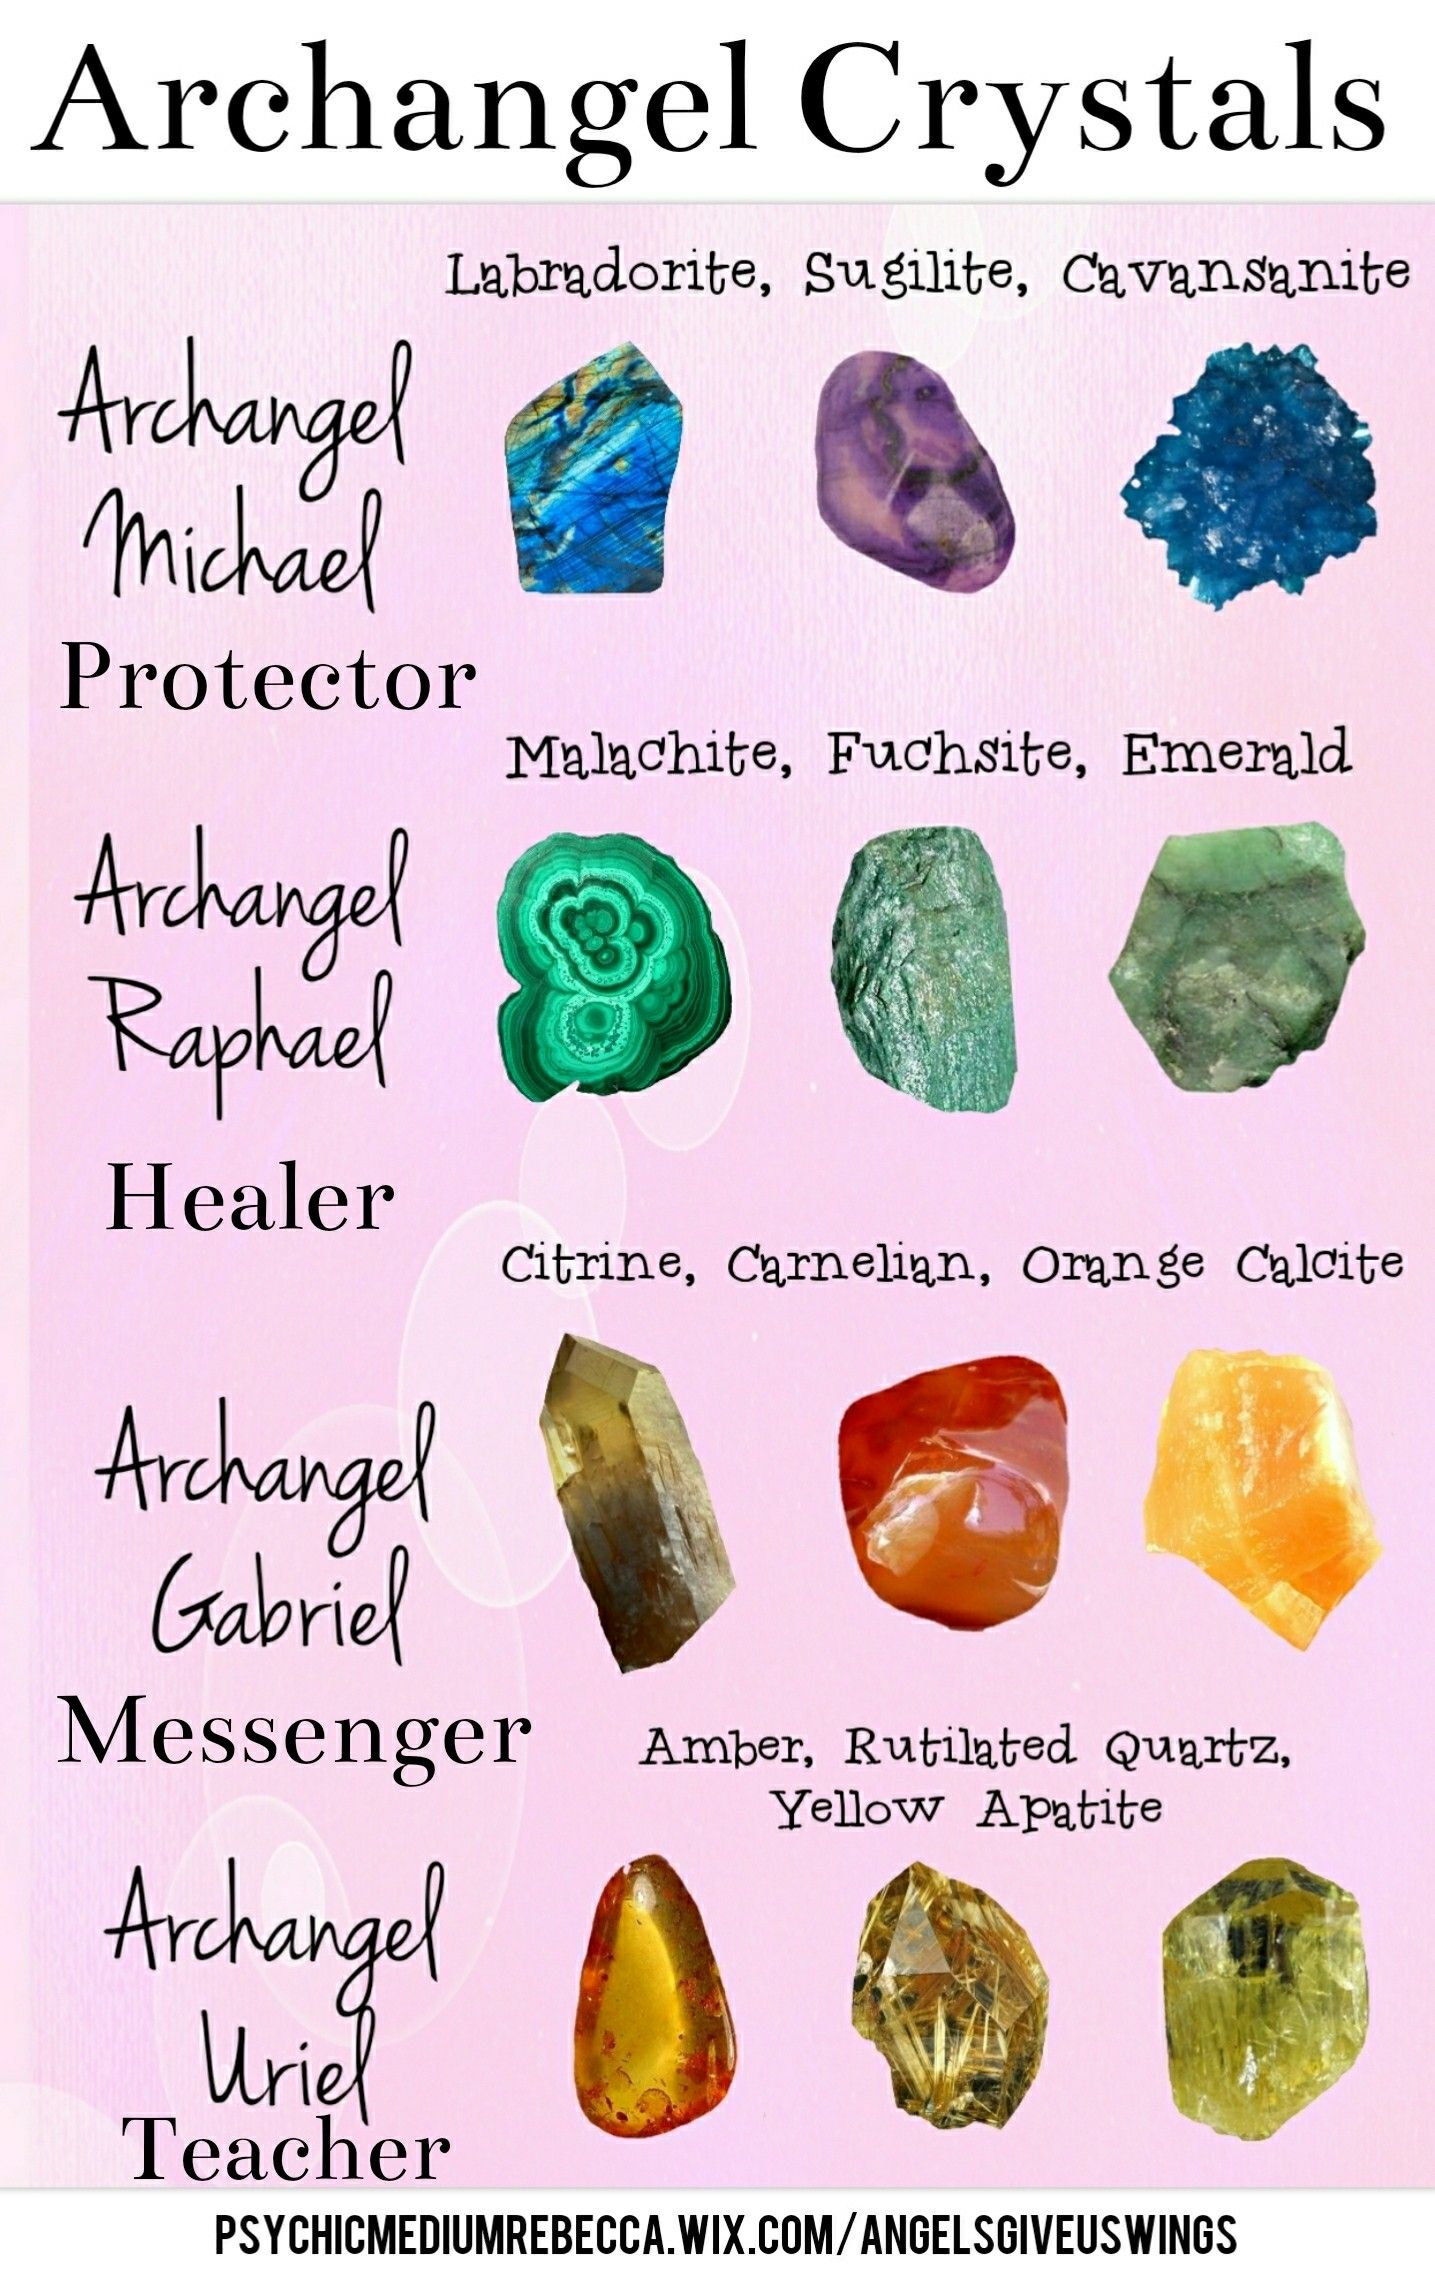 Sugilite properties and meaning photos crystal information - Crystal Meanings